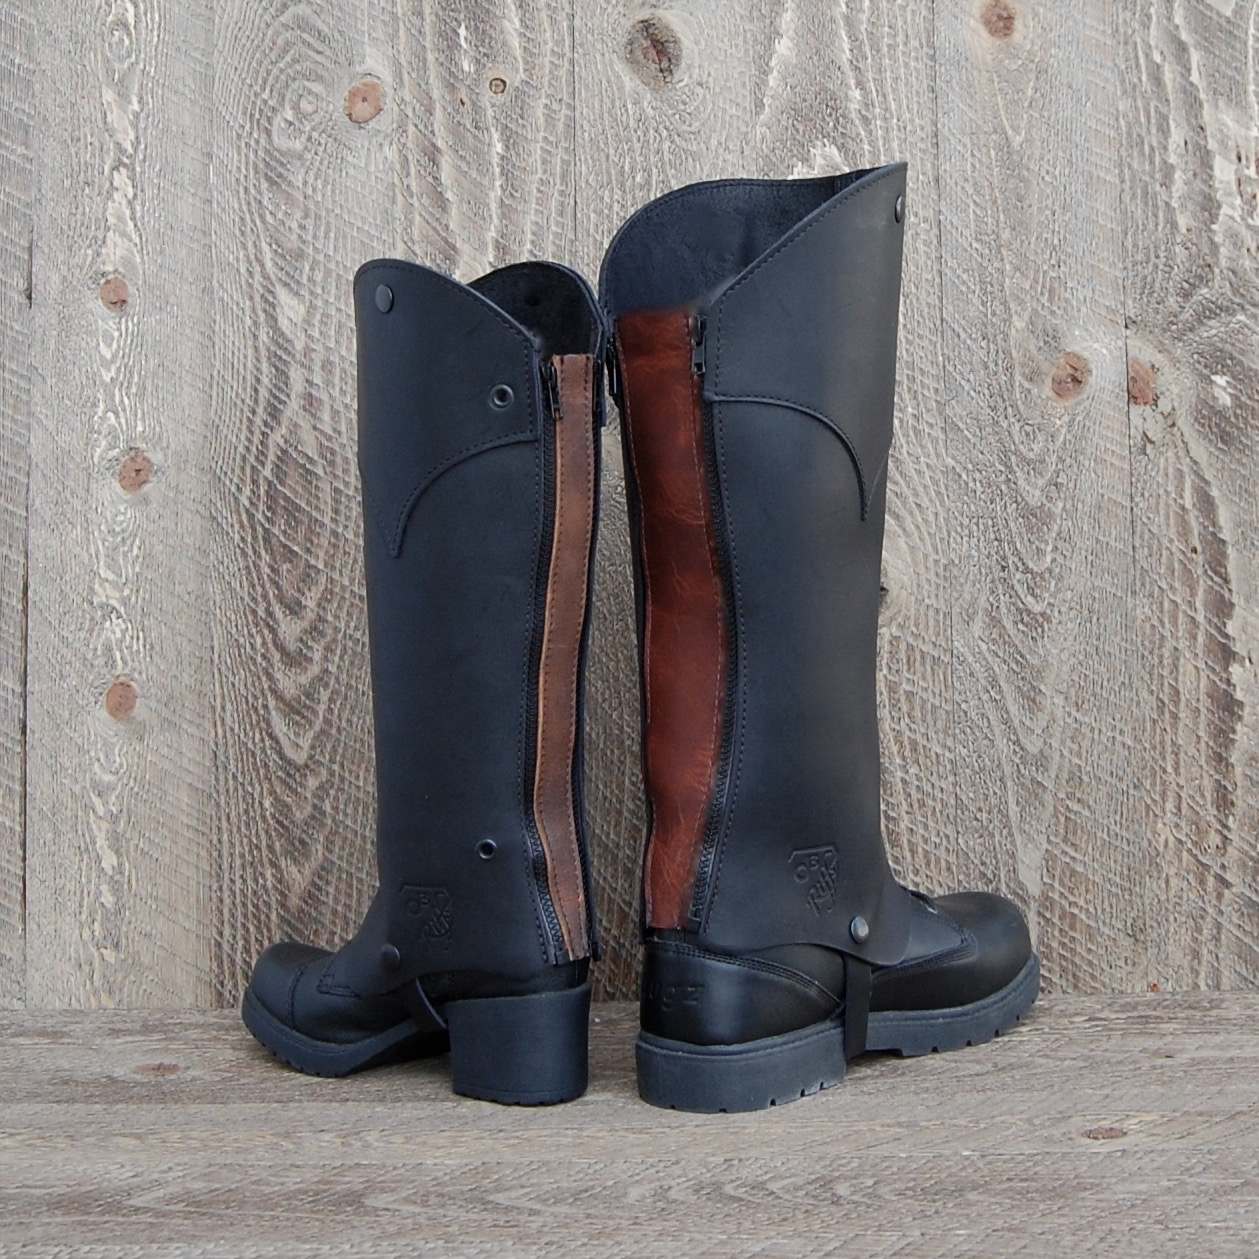 Extenders zip in easily and are available in all leathers as accessories